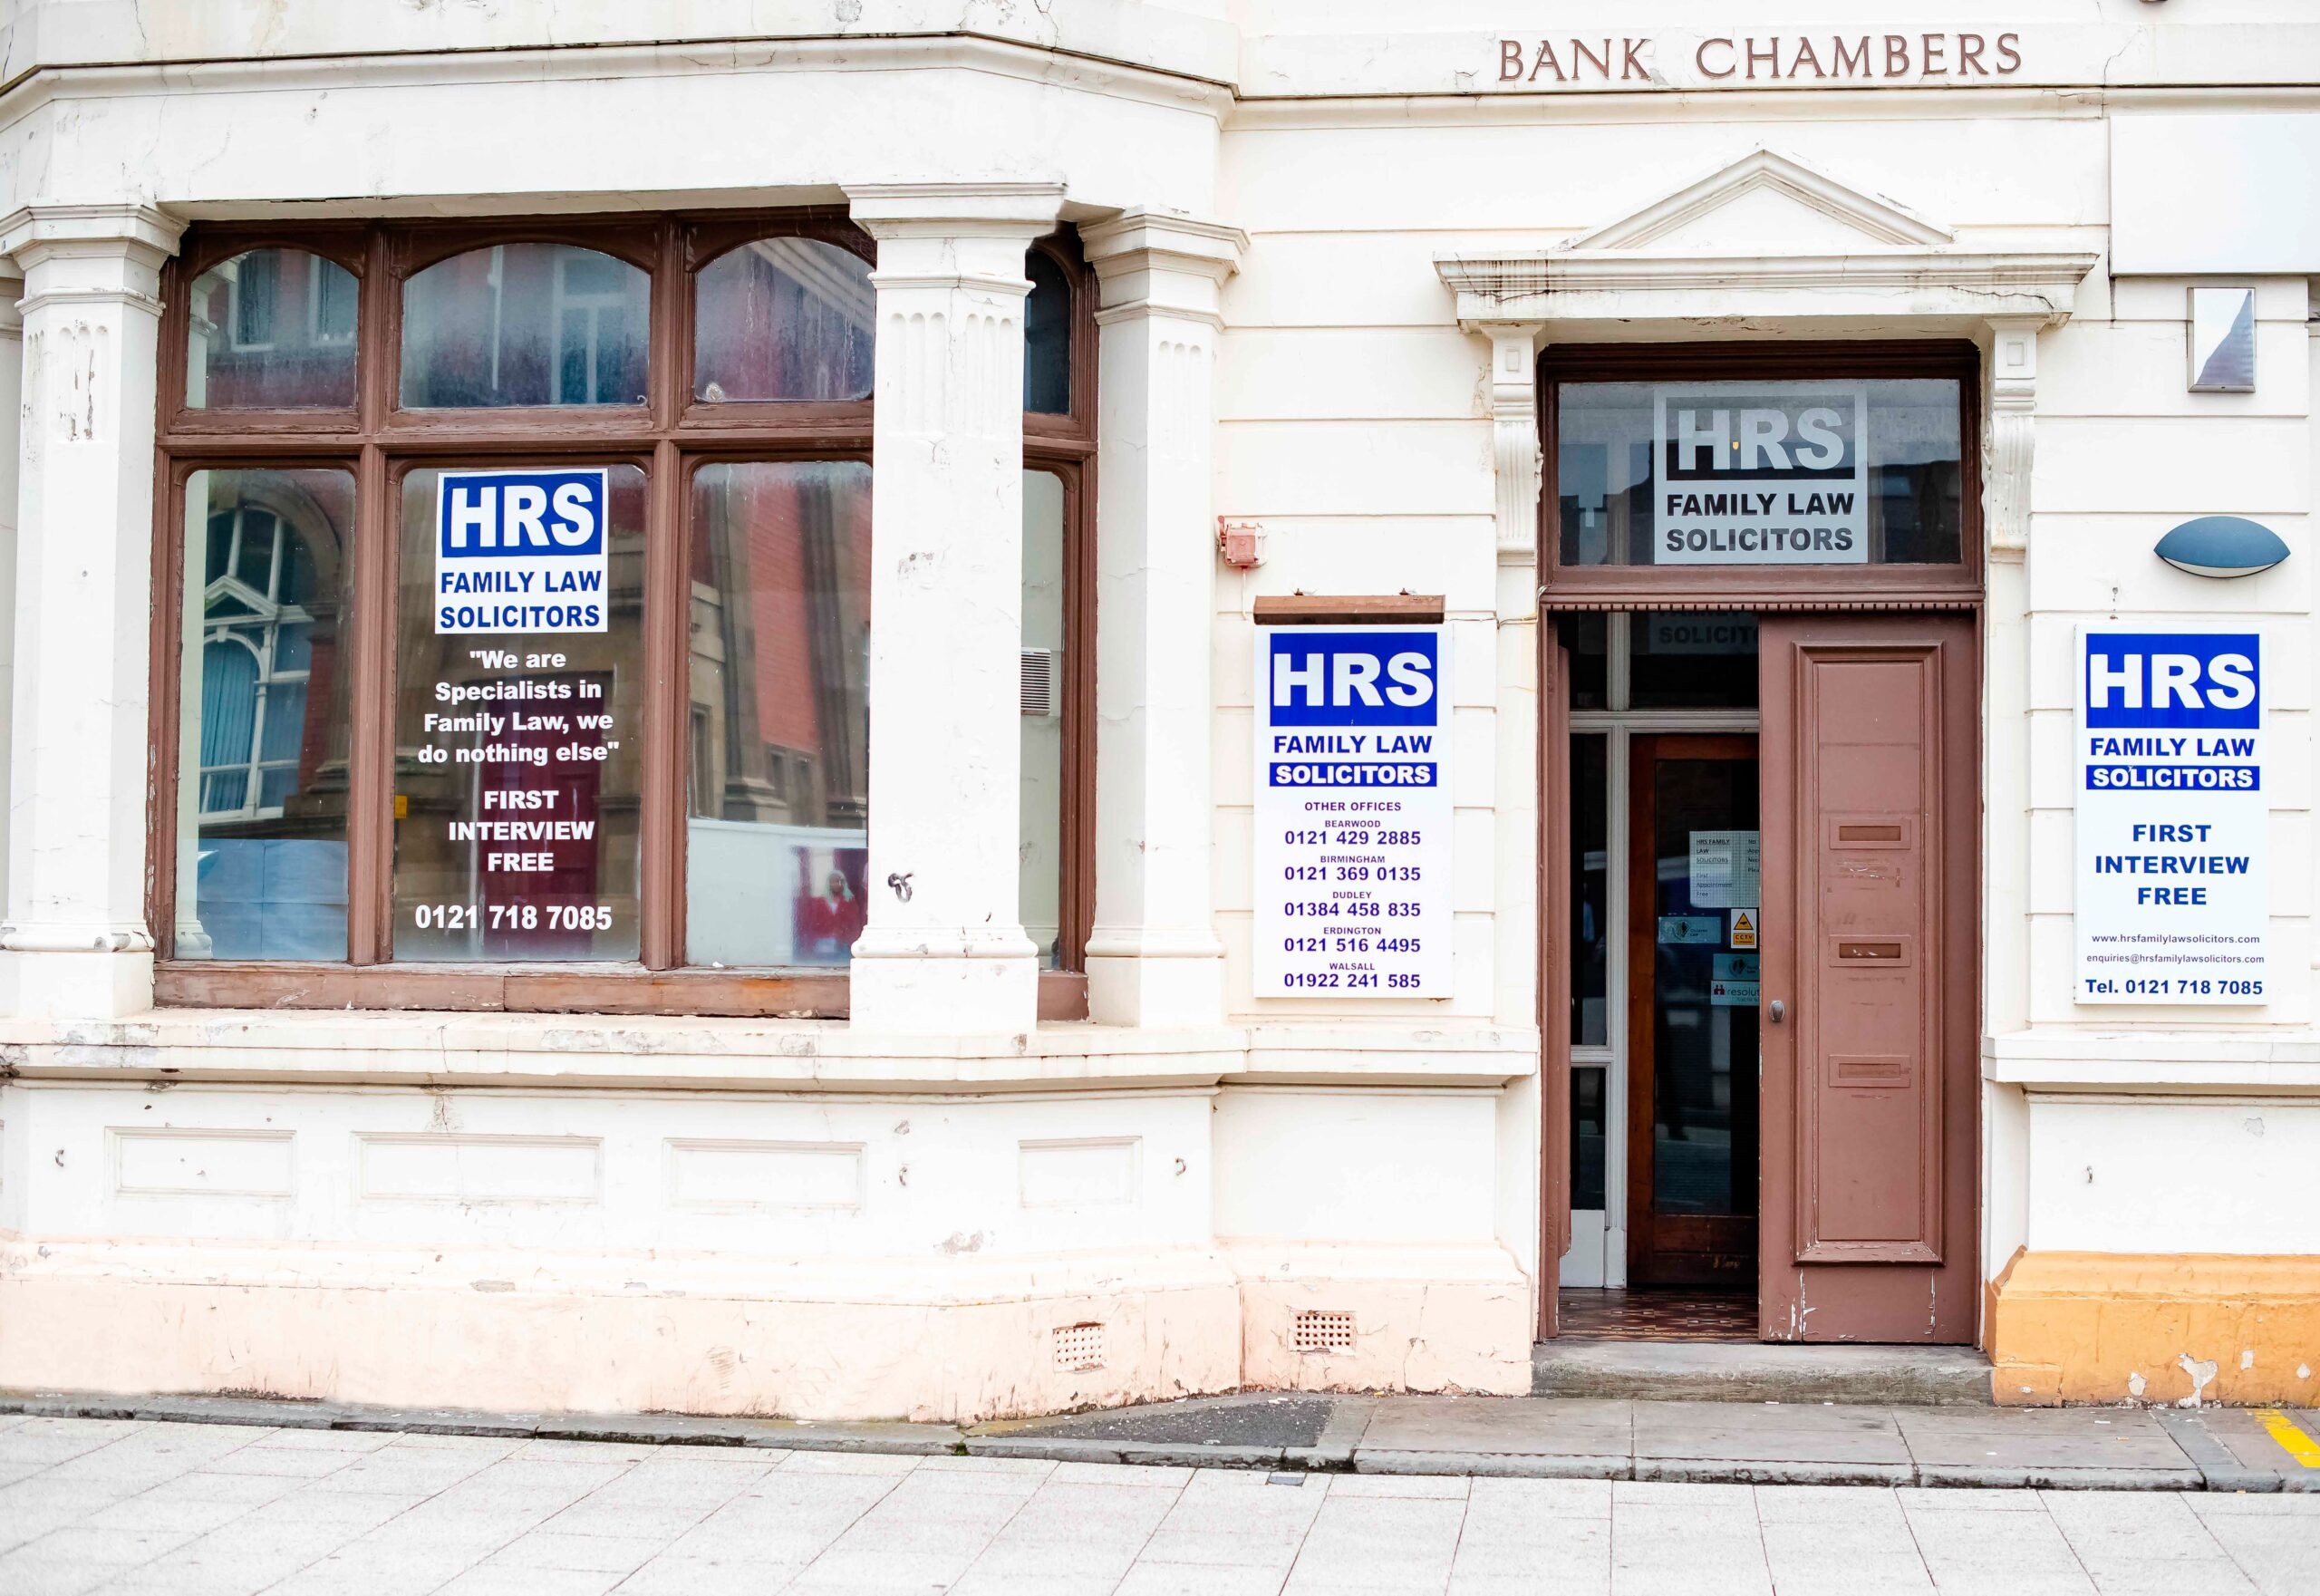 HRS Family Law Solicitors West Bromwich